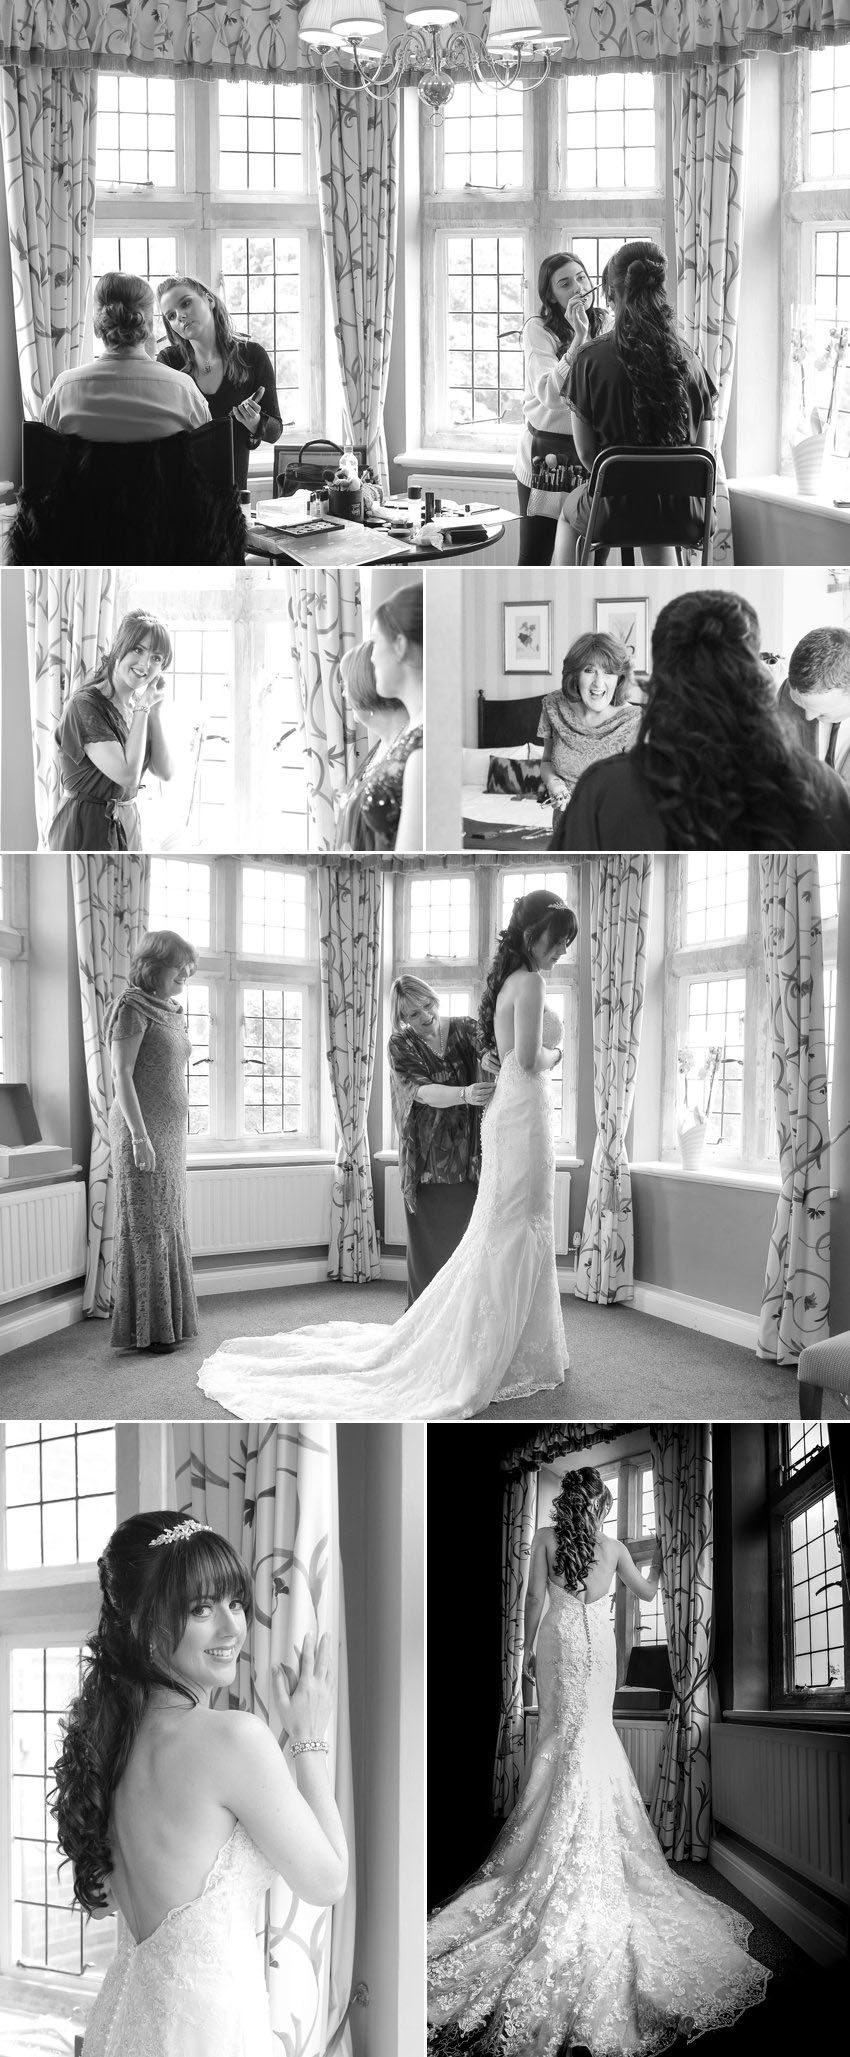 04 Wedding at Selsdon Estate, South Croydon